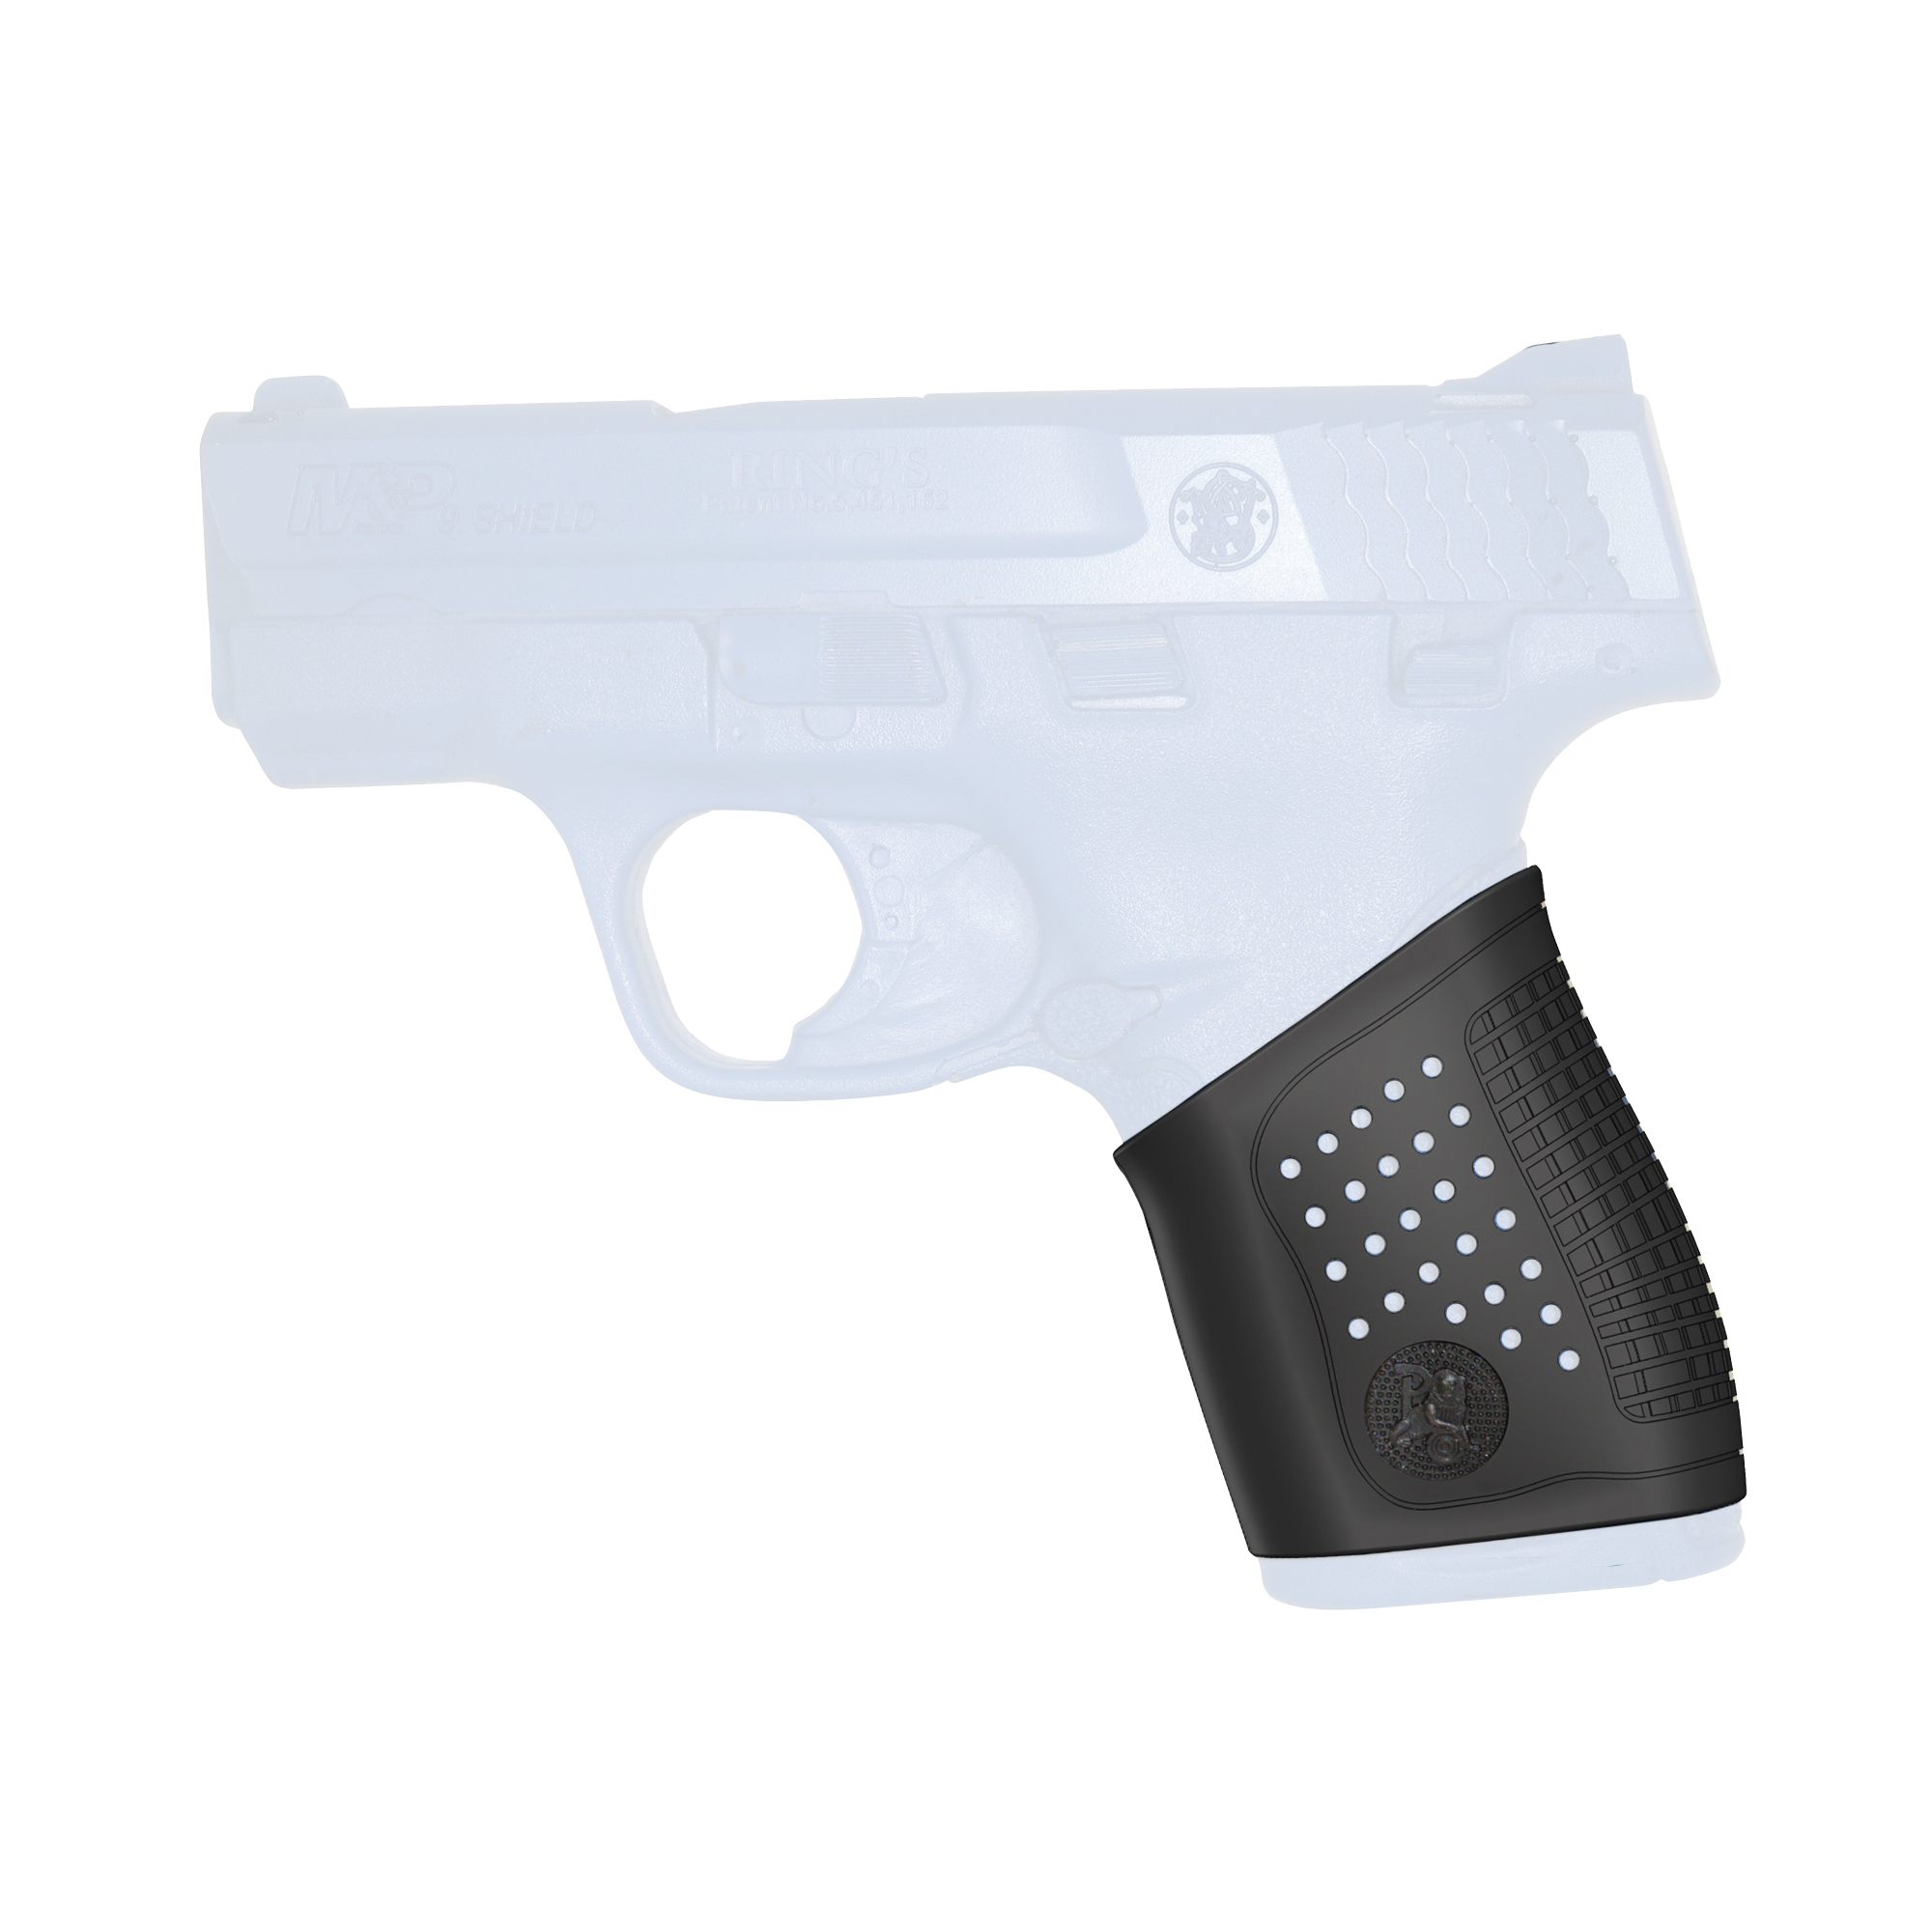 """Grip Gloves are custom molded for each pistol model. Ideal for polymer frame handguns with no replacement grips available. Made from Pachmayr Decelerator material"""" Grip Gloves deliver enhanced control and will absorb recoil for your semi-auto. The custom fit feels like an extension of your handgun grip. The ultra-soft"""" ultra-stretchy material makes installation a snap. No trimming"""" no need for soap and water. Distinctive ventilated side panels and finger grooves provide more instinctive gun orientation and a professional look."""